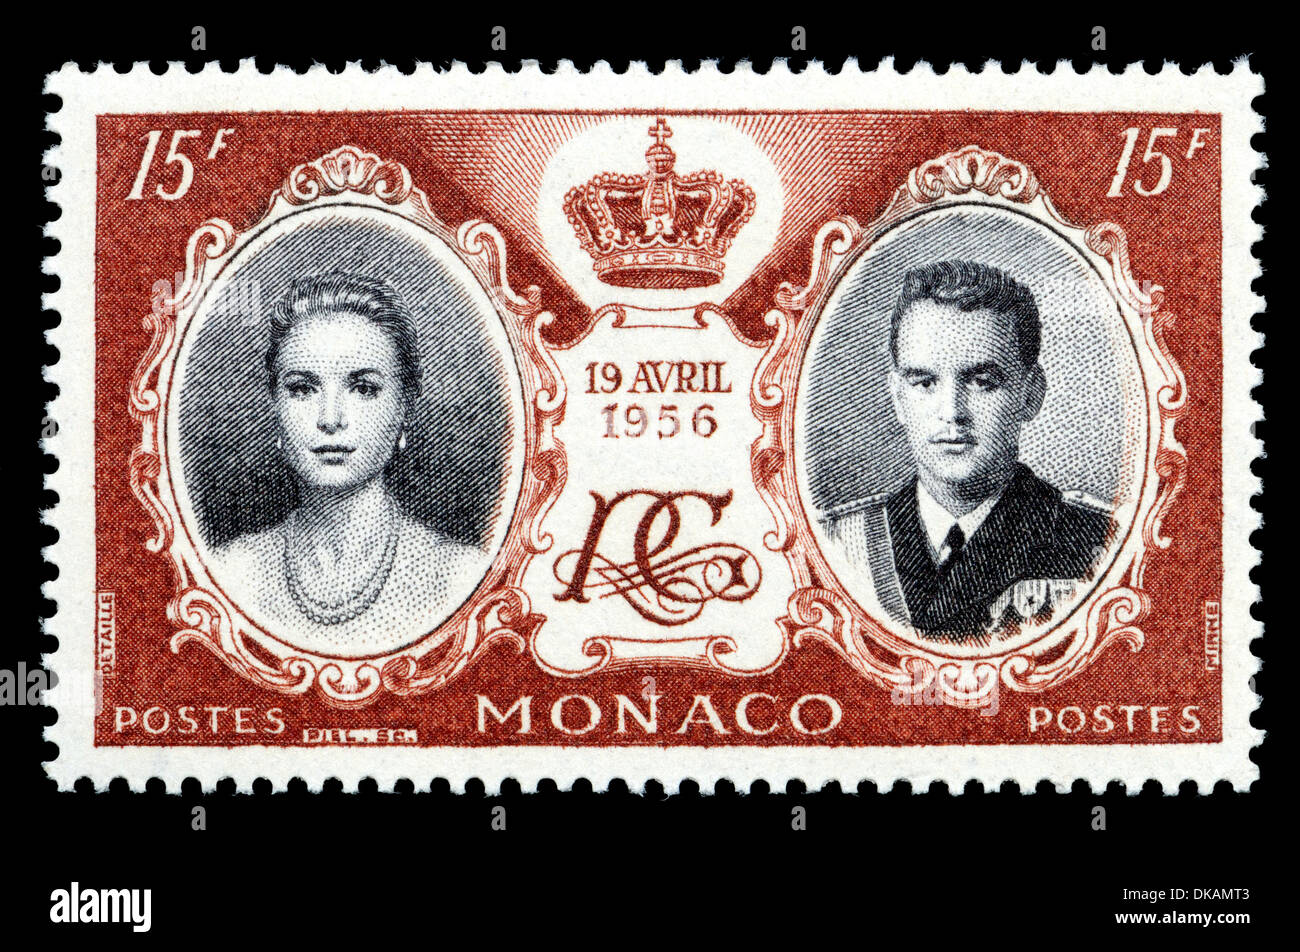 Monaco postage stamp commemorating the marriage of Prince Rainier III and Grace Kelly in 1956 - Stock Image